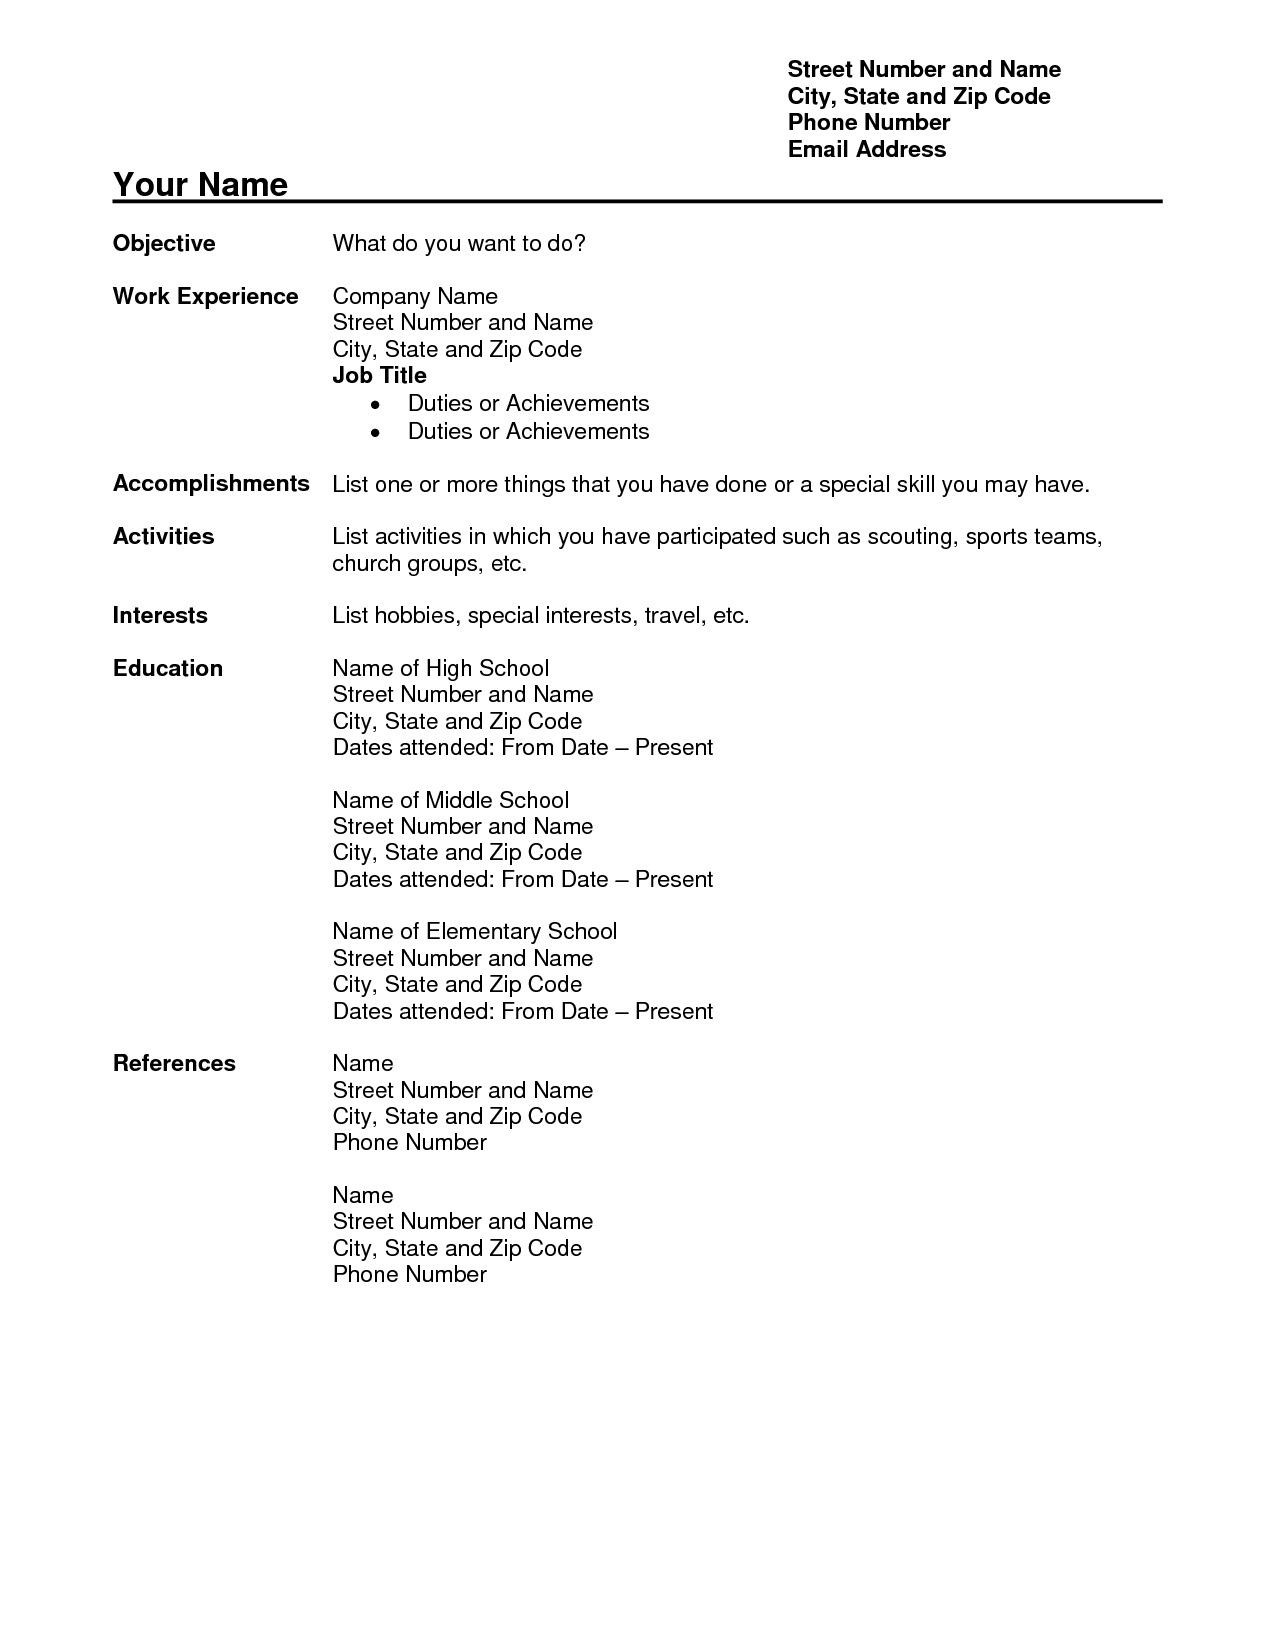 Download Resume Templates Word 2010 Free Teacher Resume Templates Download Free Teacher Resume